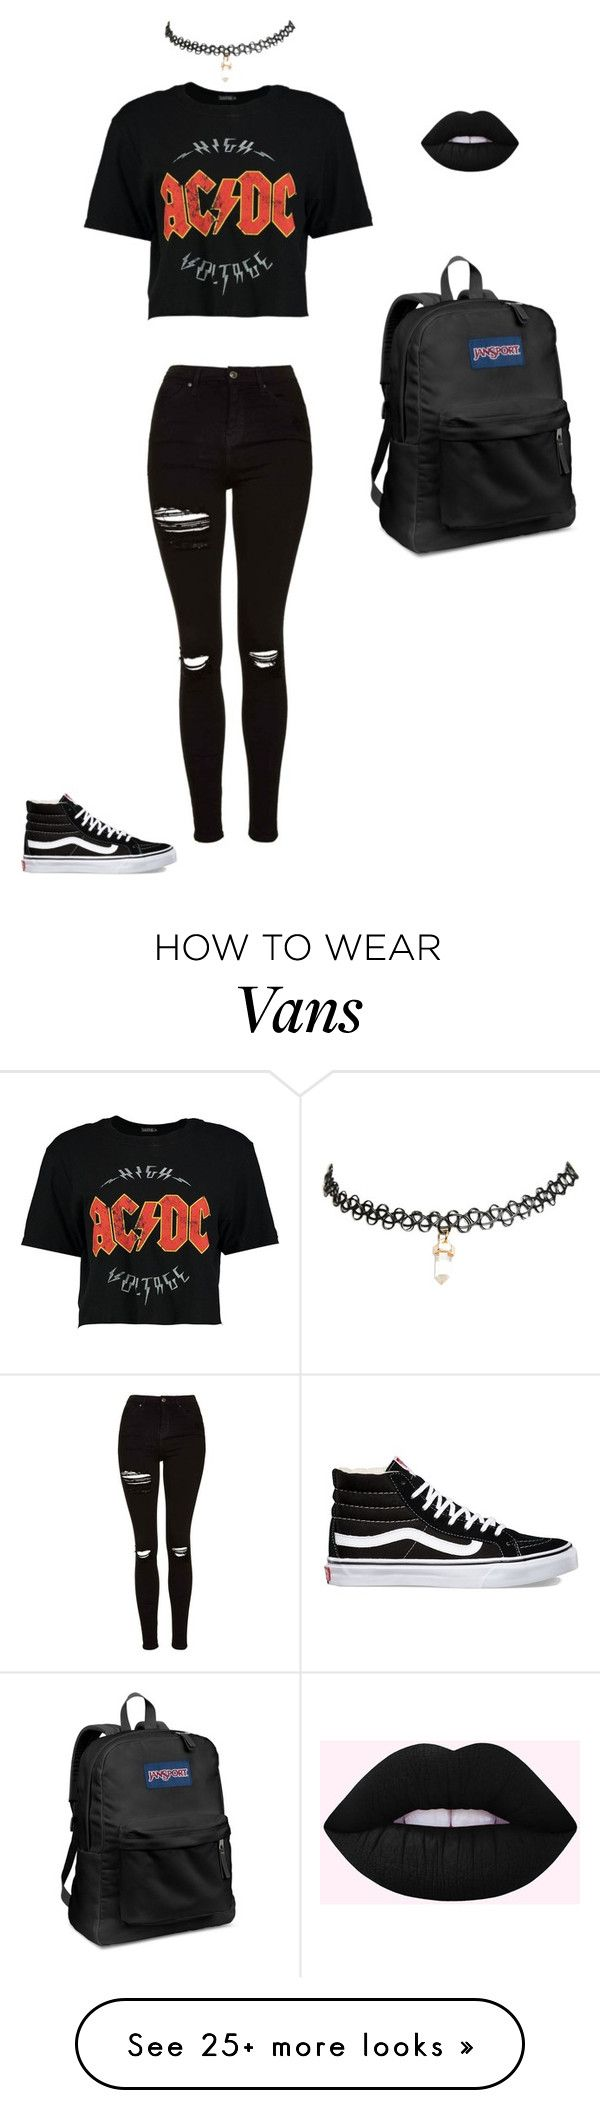 """Untitled #10"" by myamarie8 on Polyvore featuring Boohoo, Topshop, Wet Seal, Vans and JanSport"